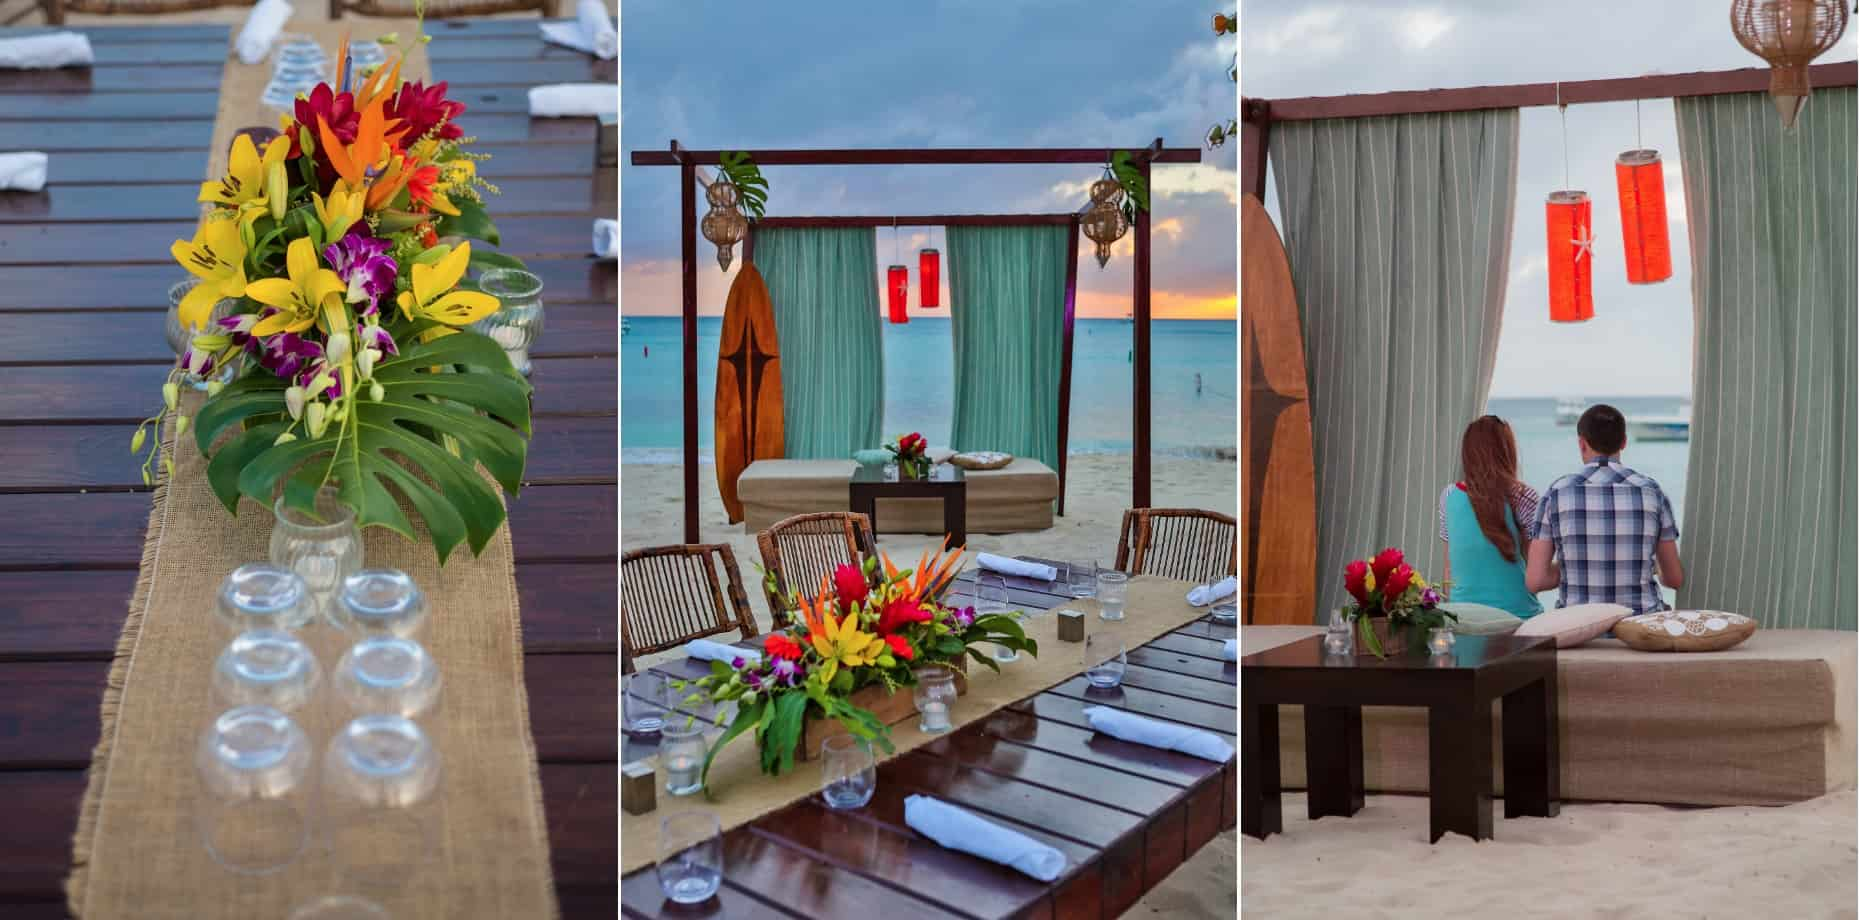 centerpiece-table-and-cabana-cayman-islands-beach-reception-corporate-event-by-celebrations-ltd-2